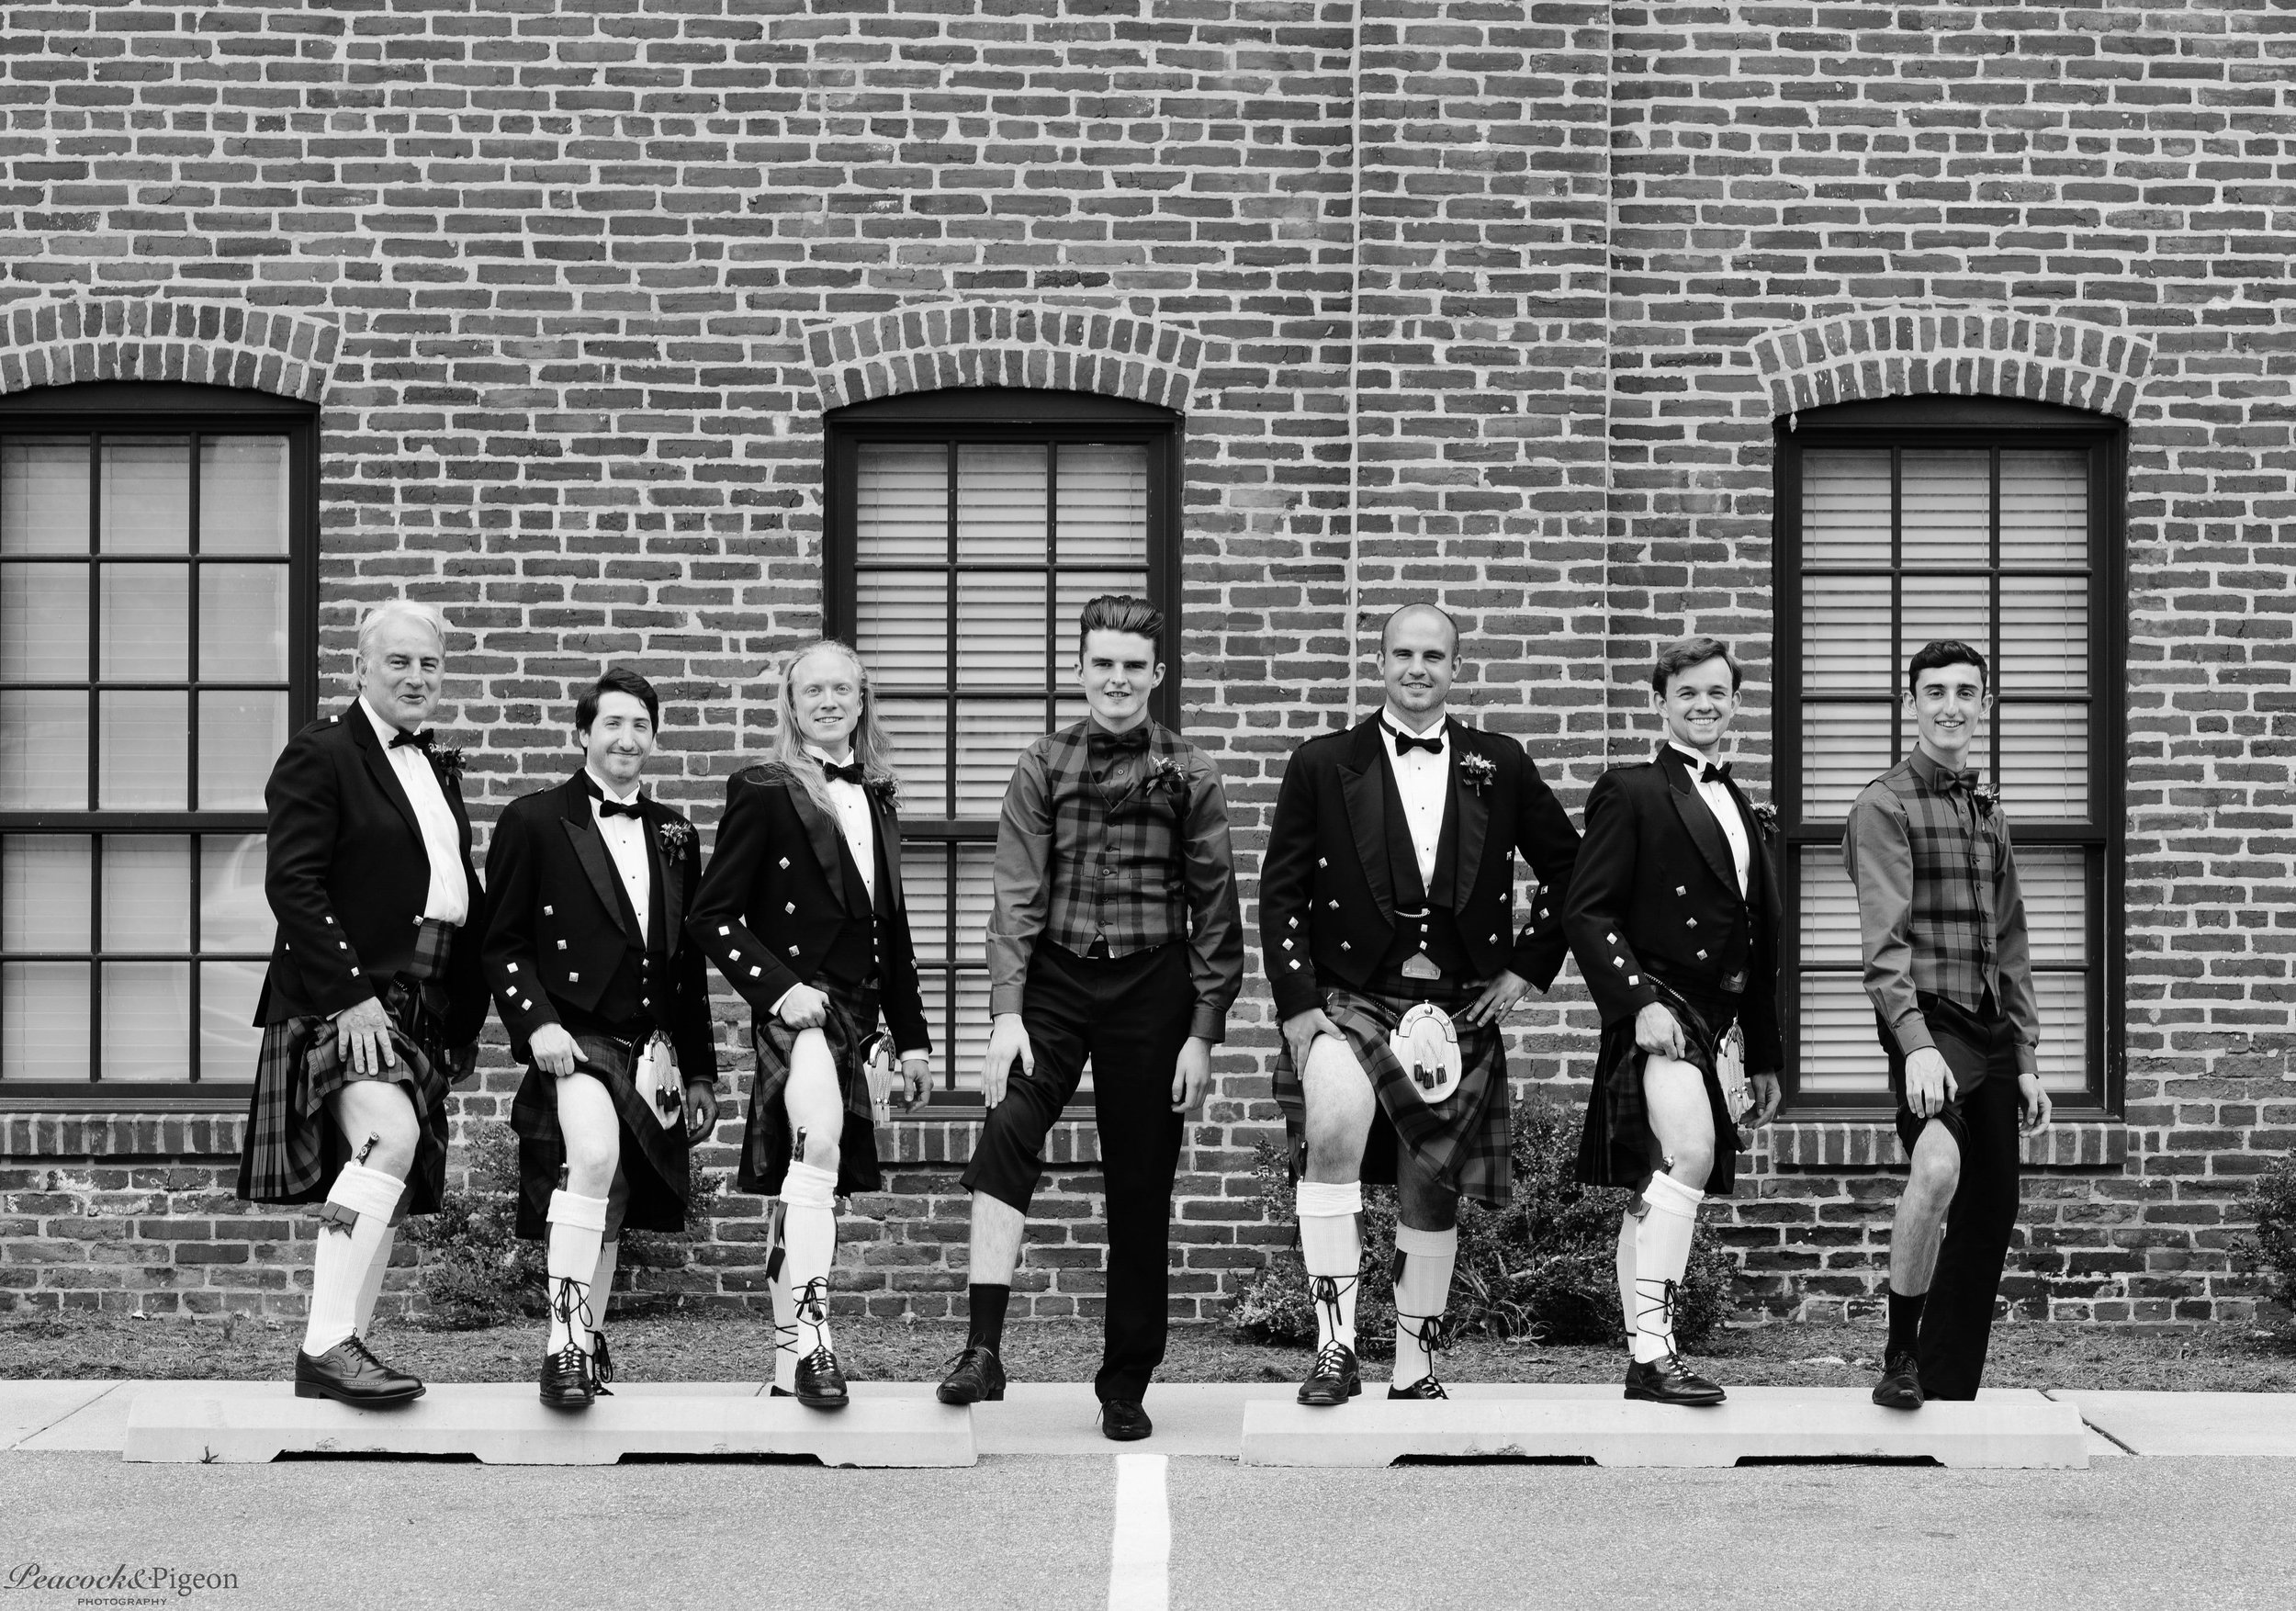 Callum_and_Sara's_Wedding_at_the_Cork_Factory_Hotel_in_Lancaster-Part_Three_The_Groom_Groomsmen_and_Family_Black_and_White_Watermarked-52.jpg